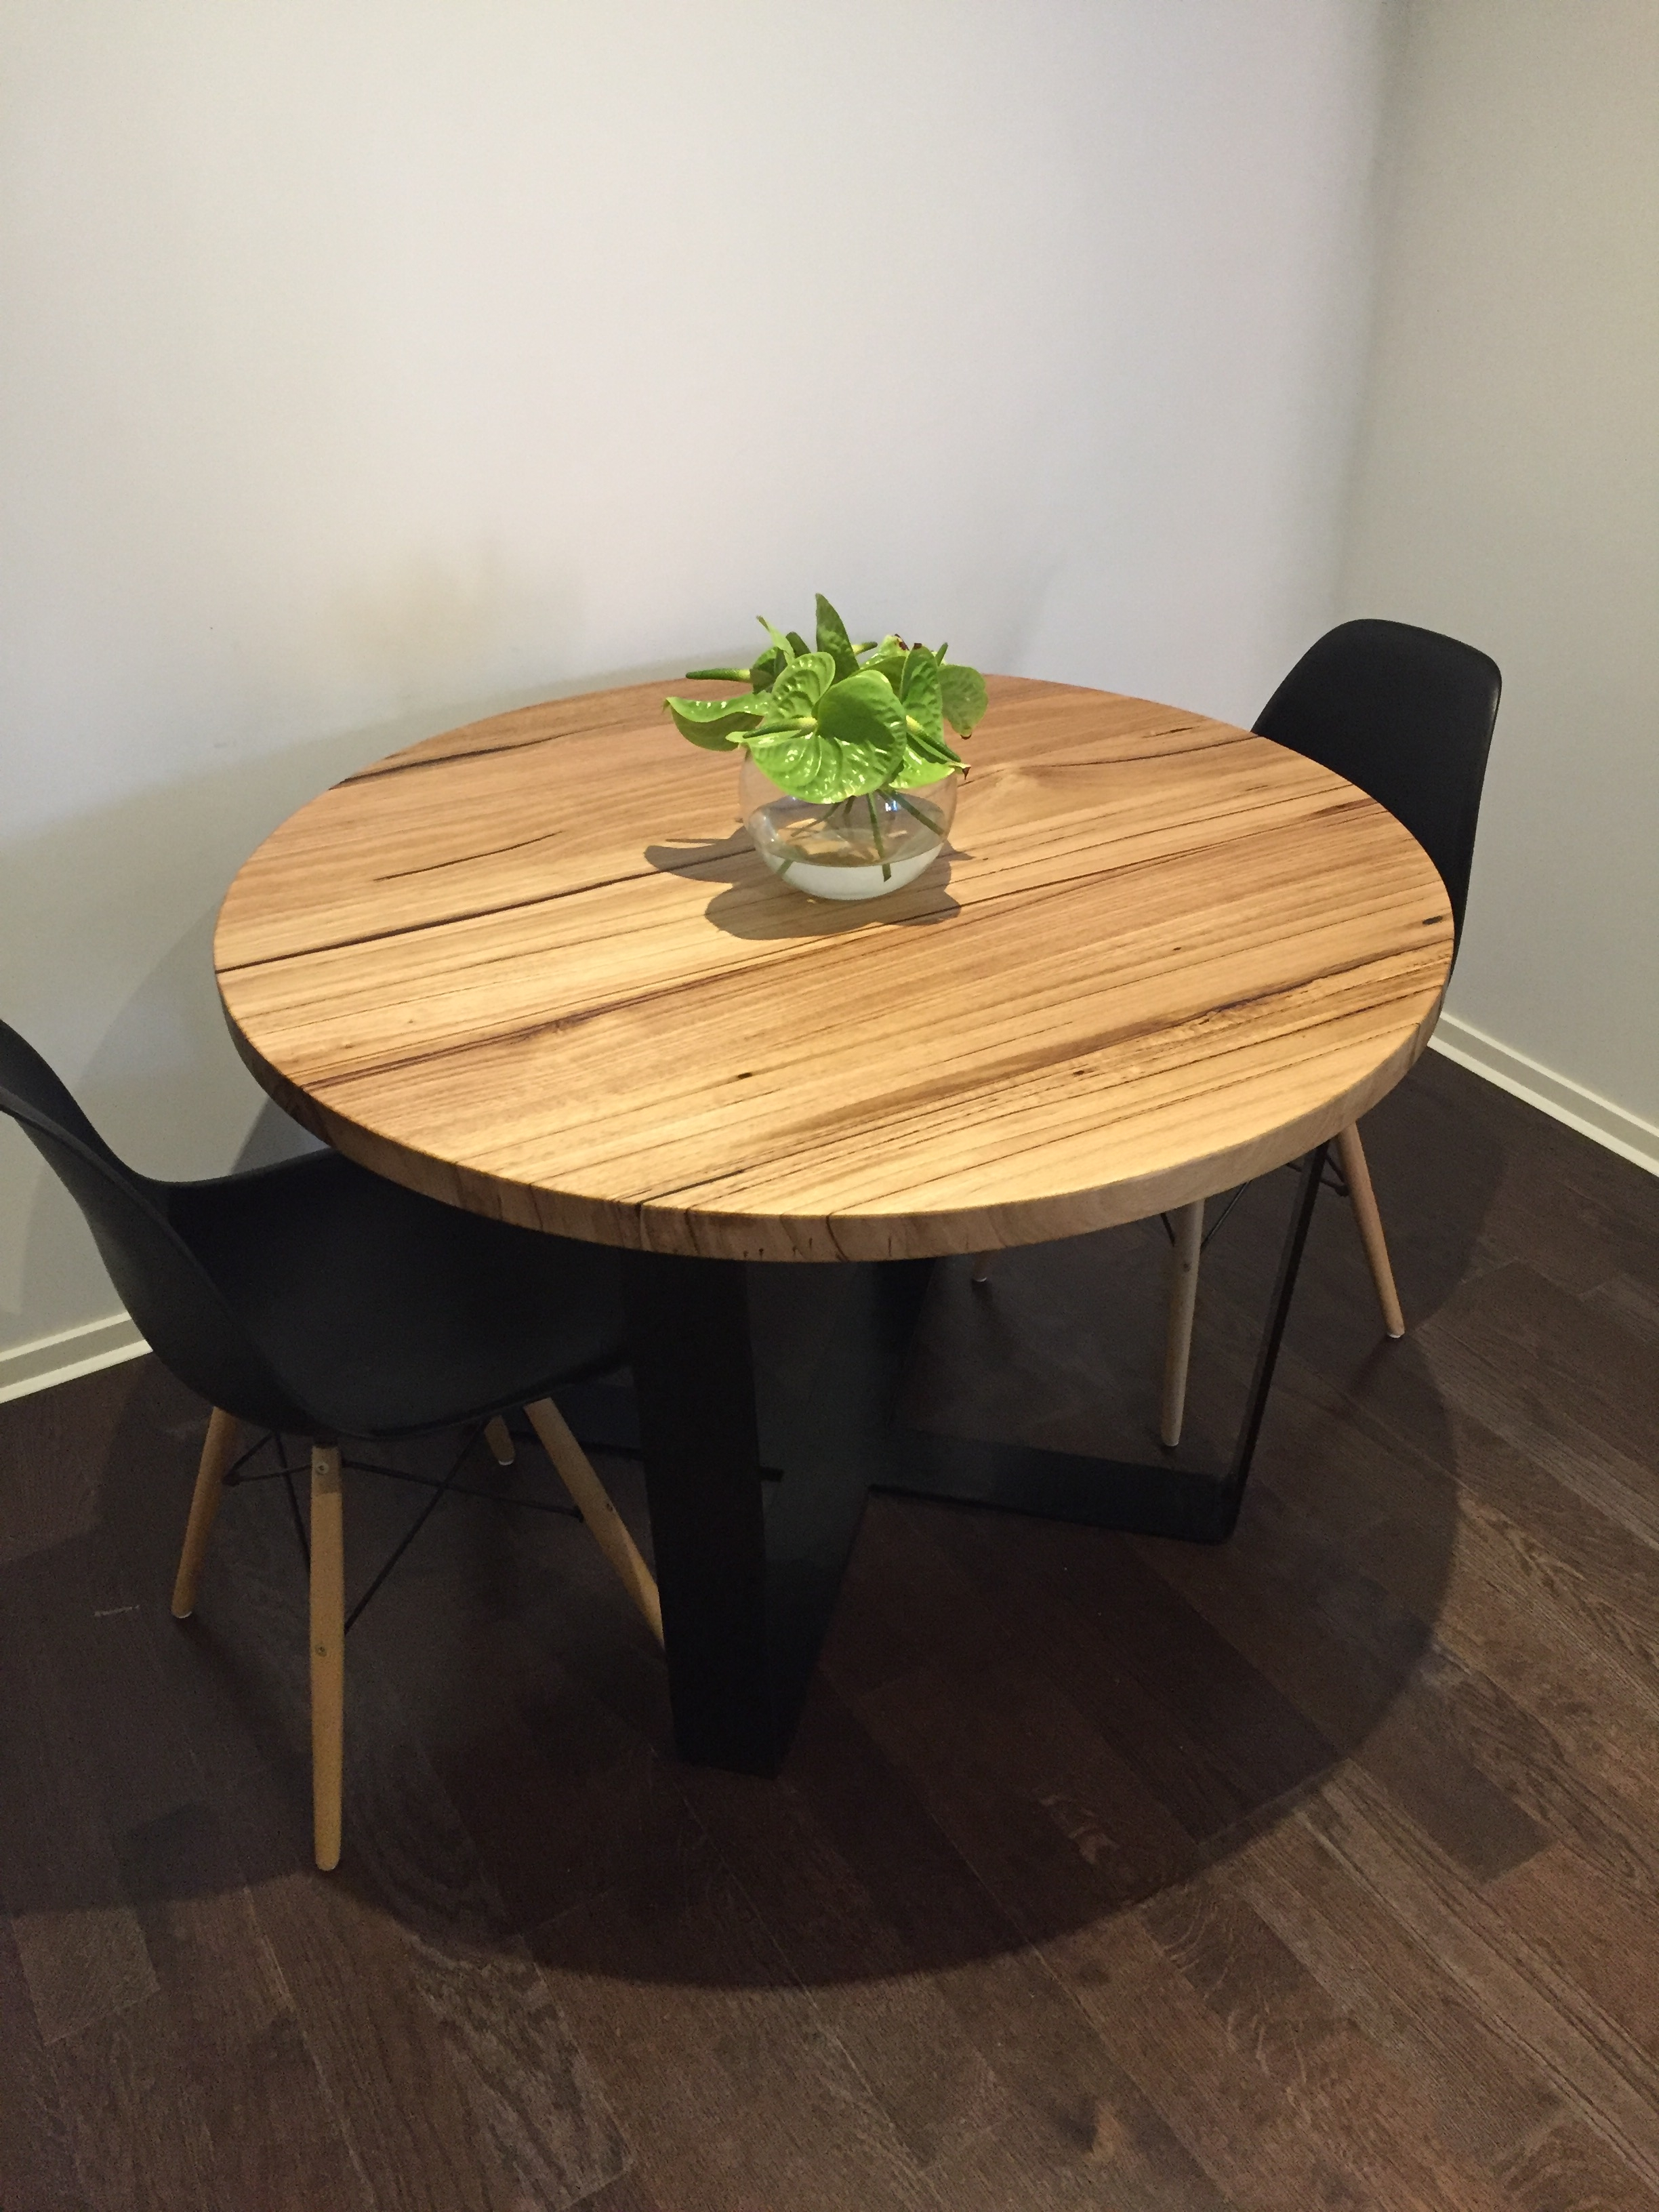 //jrbespokedesigns.com.au/wp-content/uploads/2018/06/Vic-ash-round-table3-e1530186559937.jpg